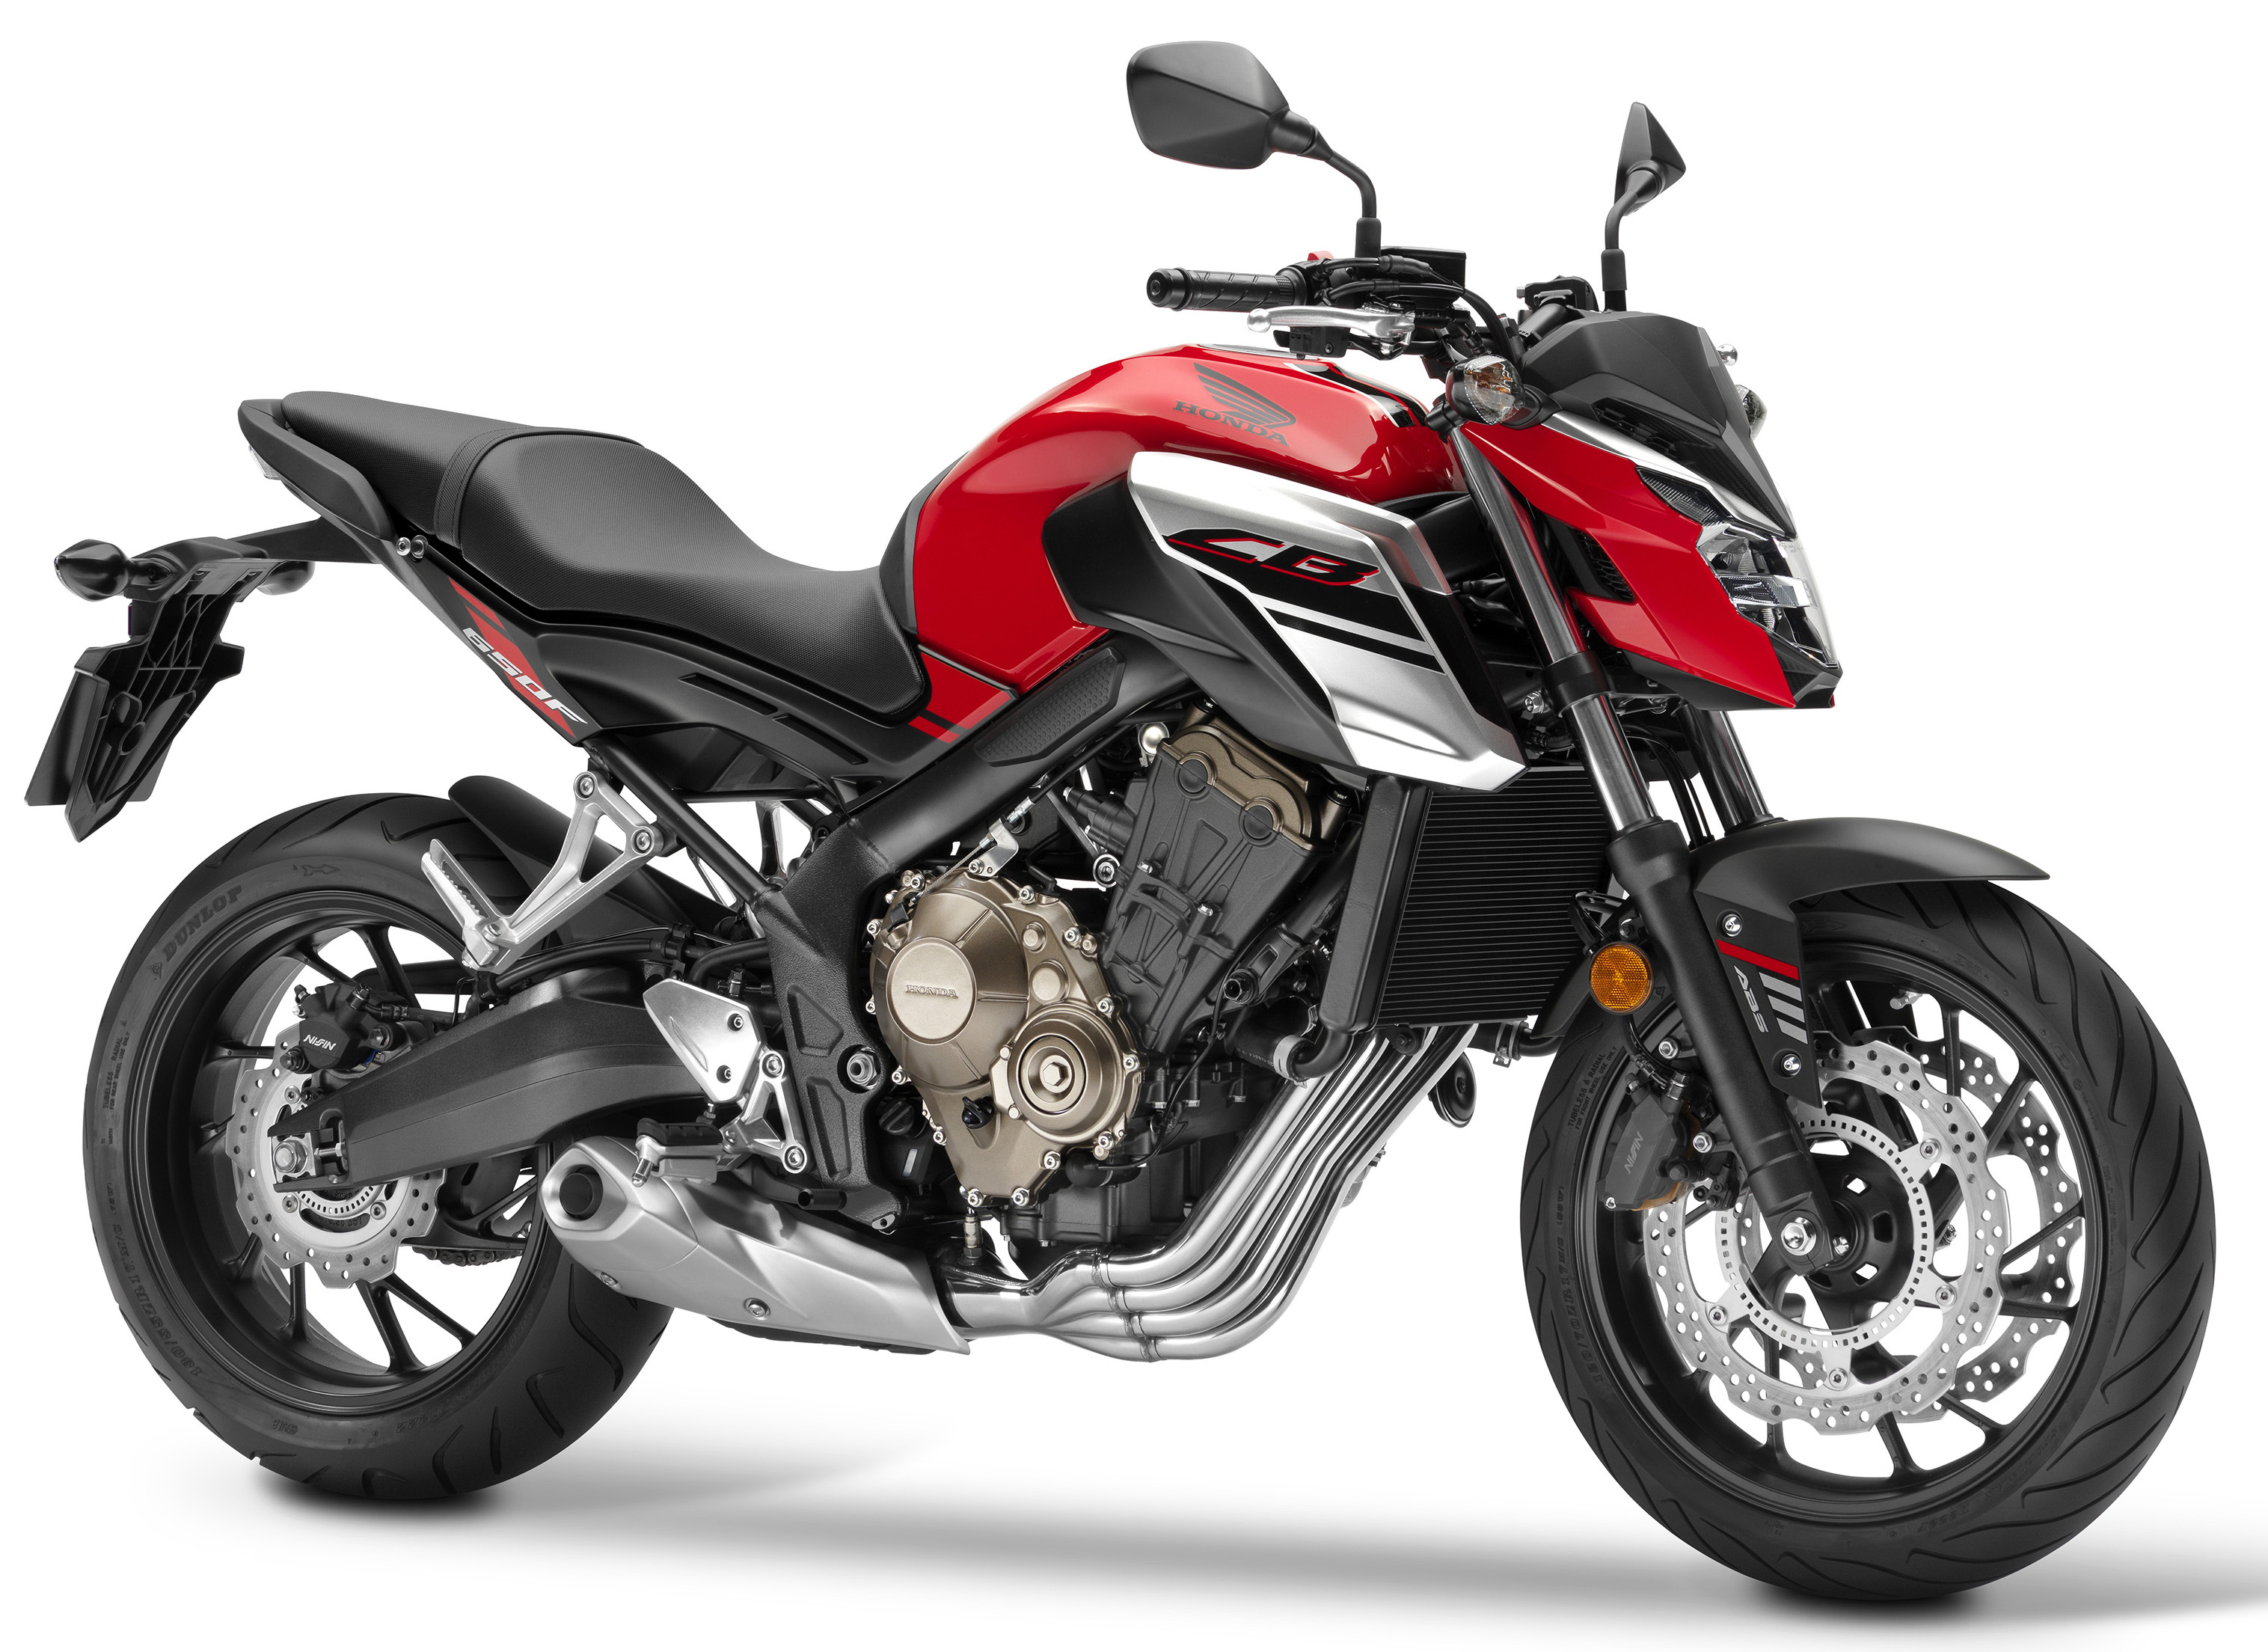 2017 Honda CBR650F and CB650F updated with new colour, spec